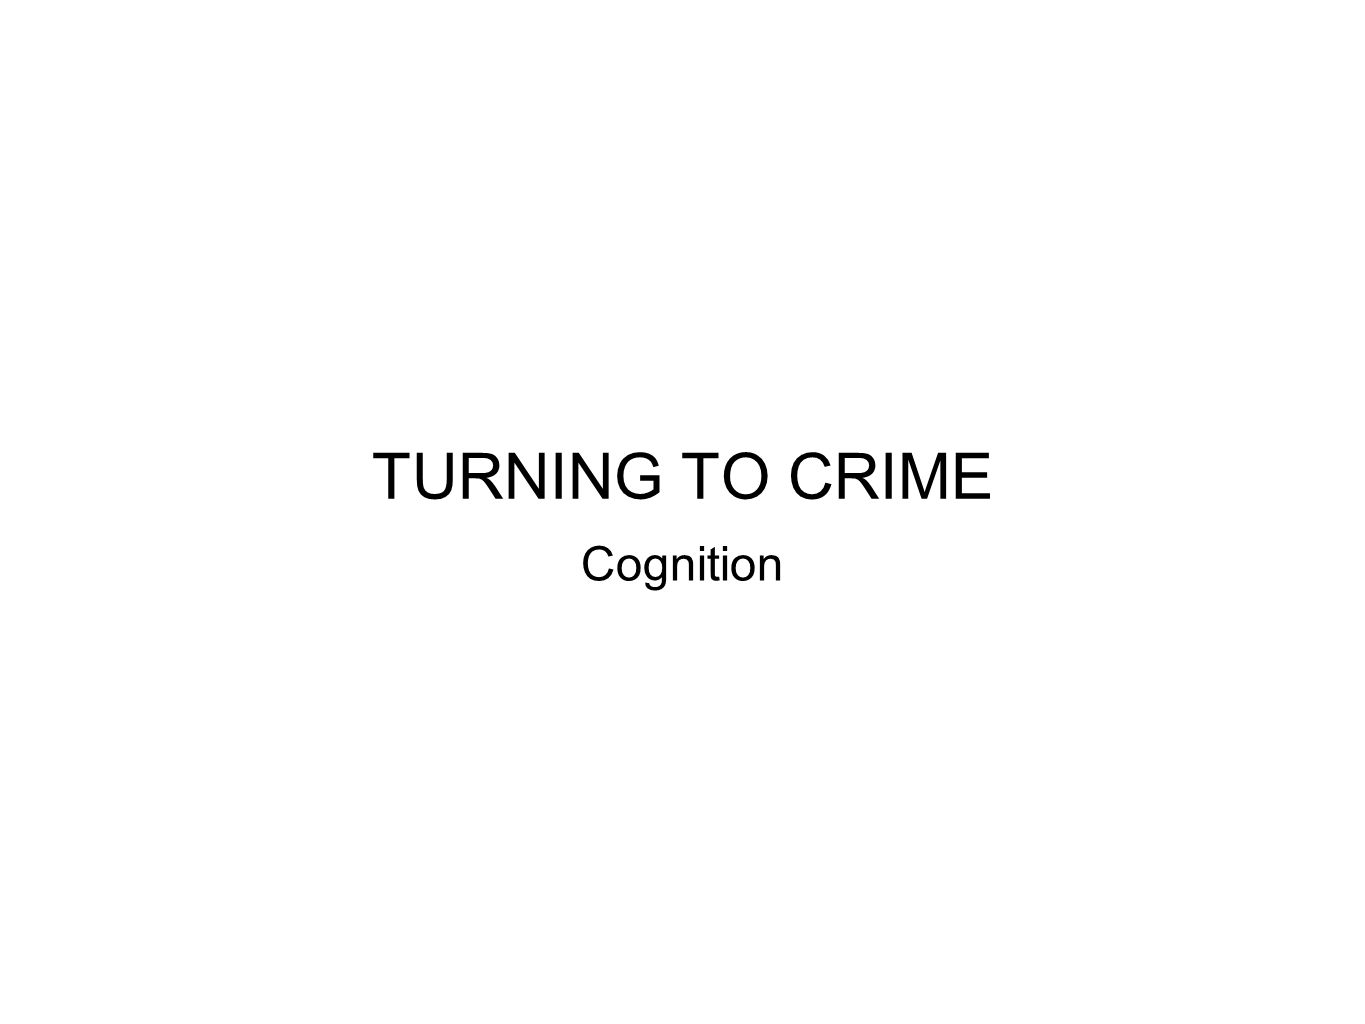 TURNING TO CRIME Cognition